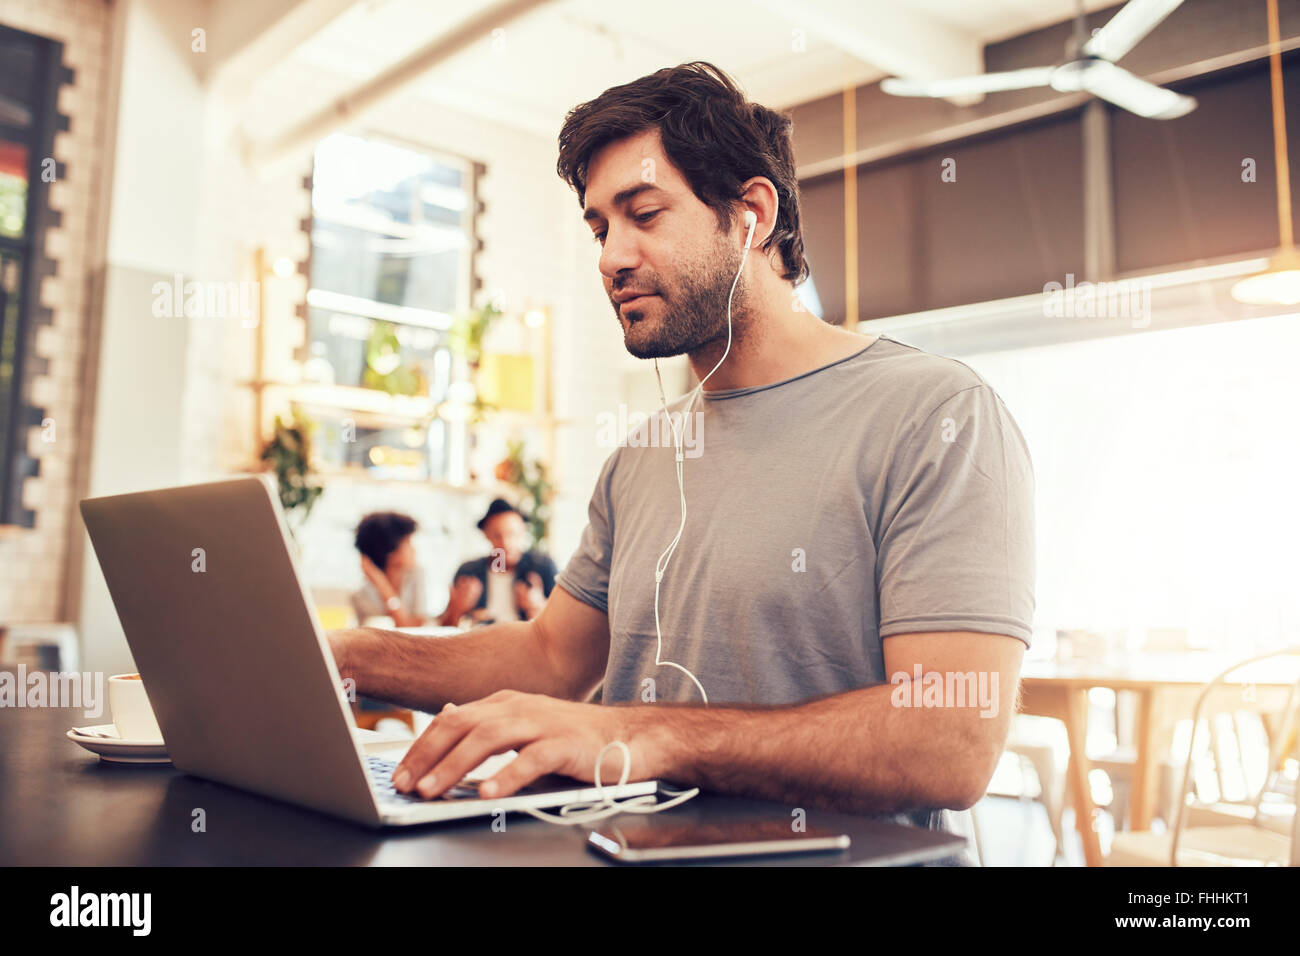 Portrait of a young caucasian man with earphones using laptop at a cafe. Man with beard working on laptop computer - Stock Image